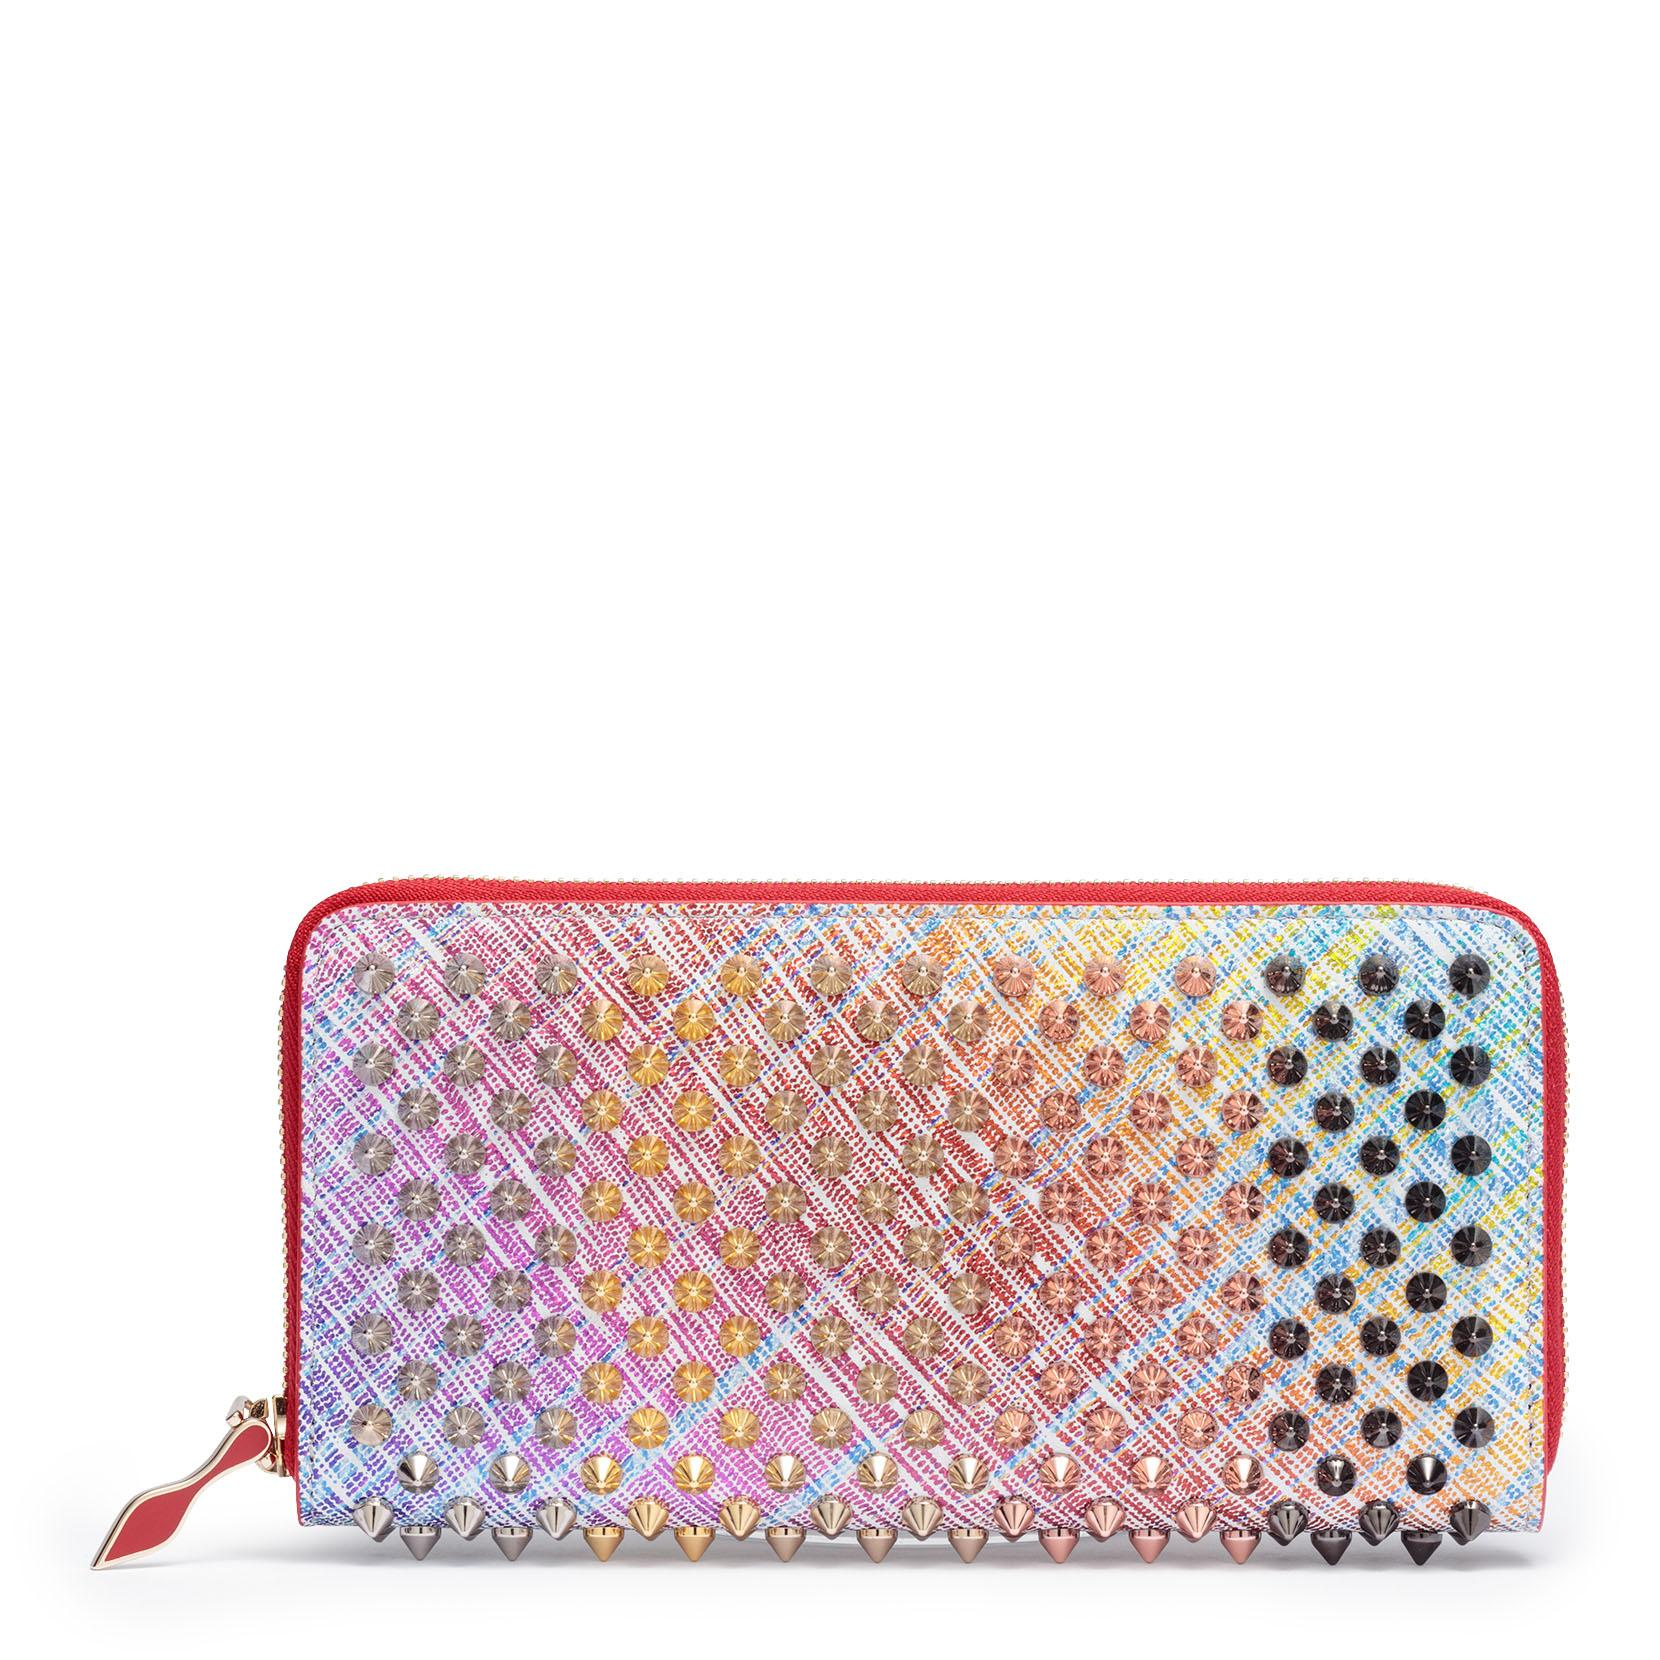 ca0e6caf970 Panettone Unicorn Suede Spikes Wallet in White